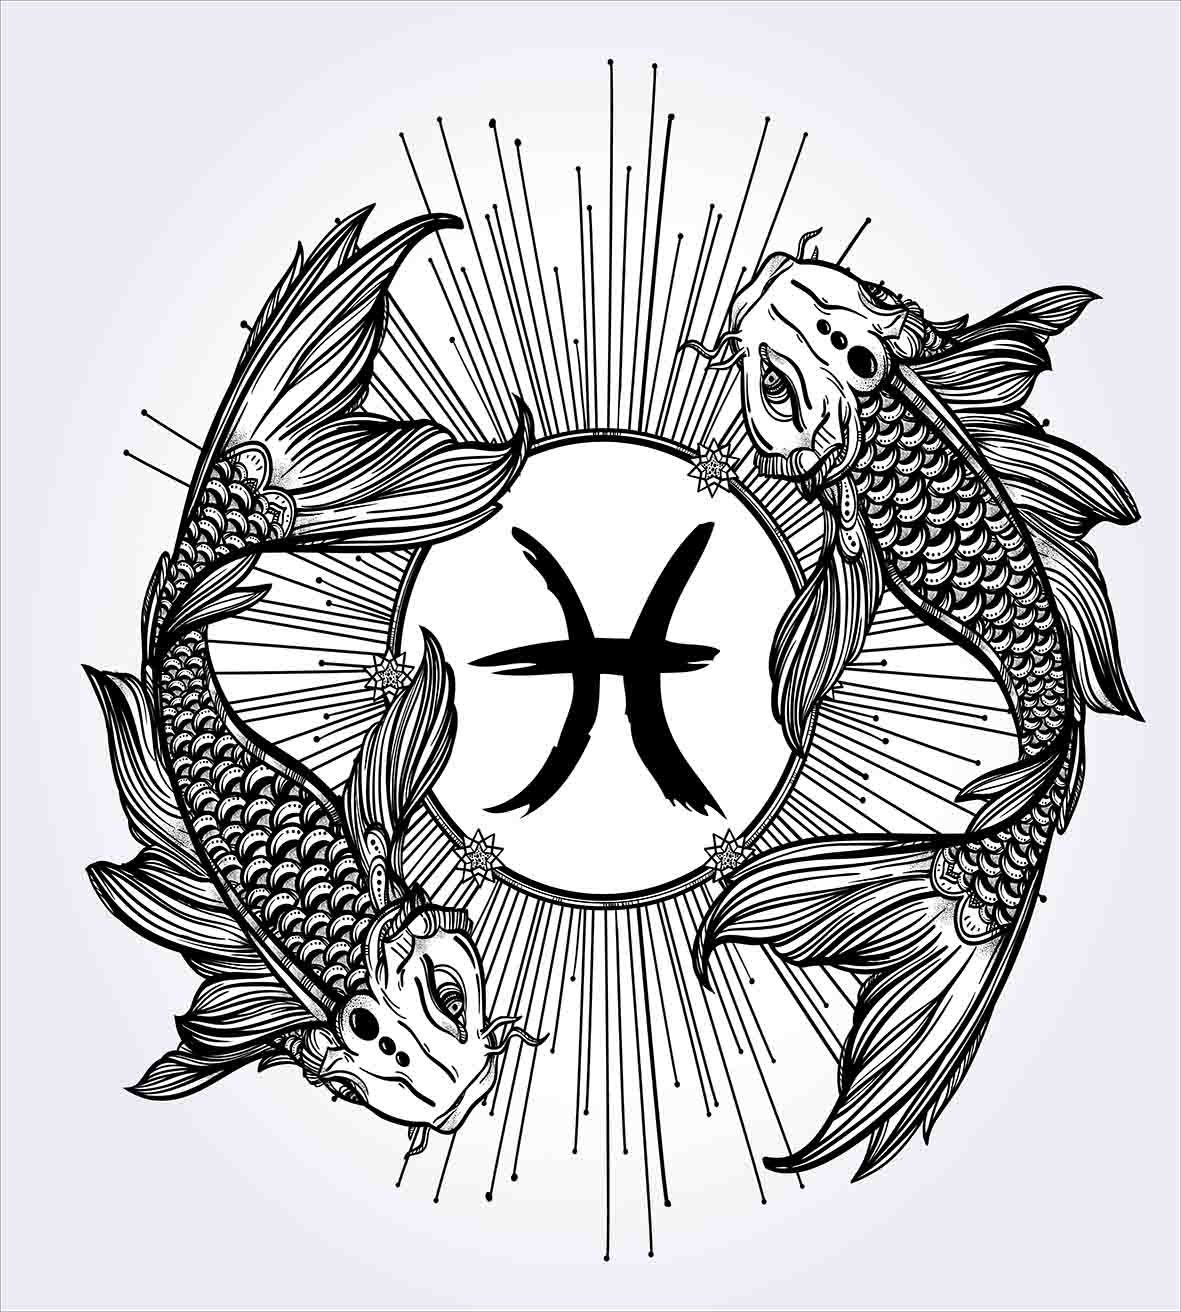 Duvet Cover Set Sketch Of Pisces Sign With Fishes Constellation Boundaries Analysis Symbol Artwork Decor 4 Piece Bedding In Sets From Home